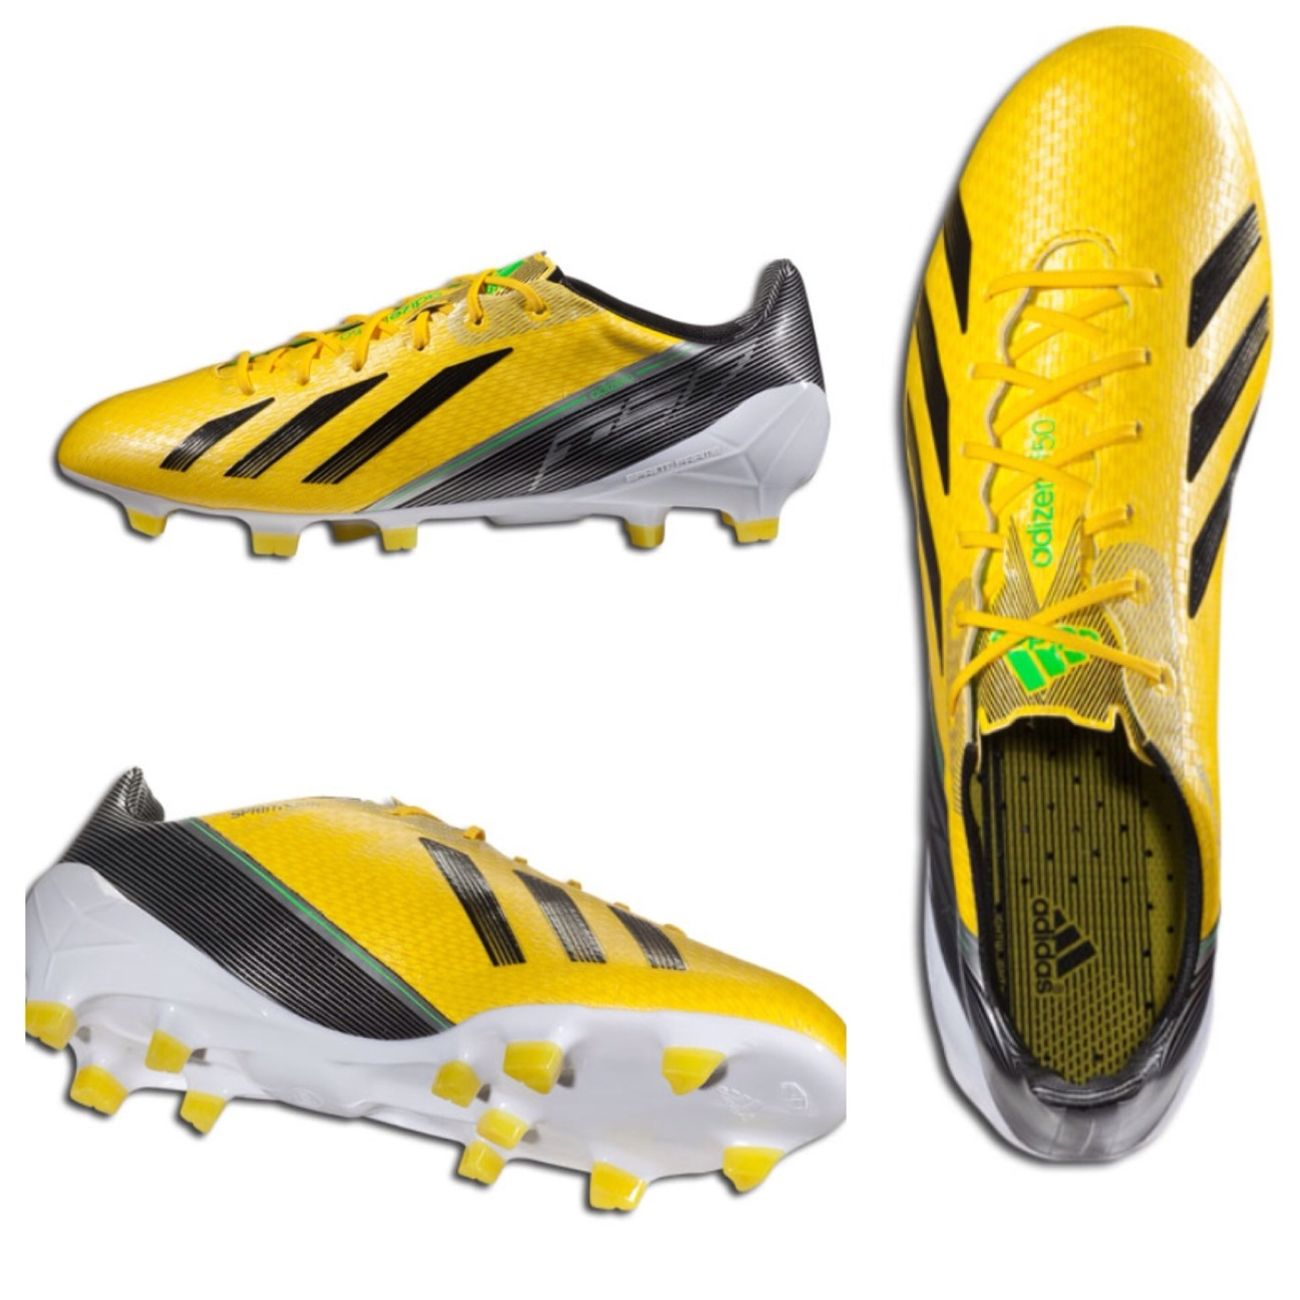 Adidas F50 Adizeros Commin In On Sunday